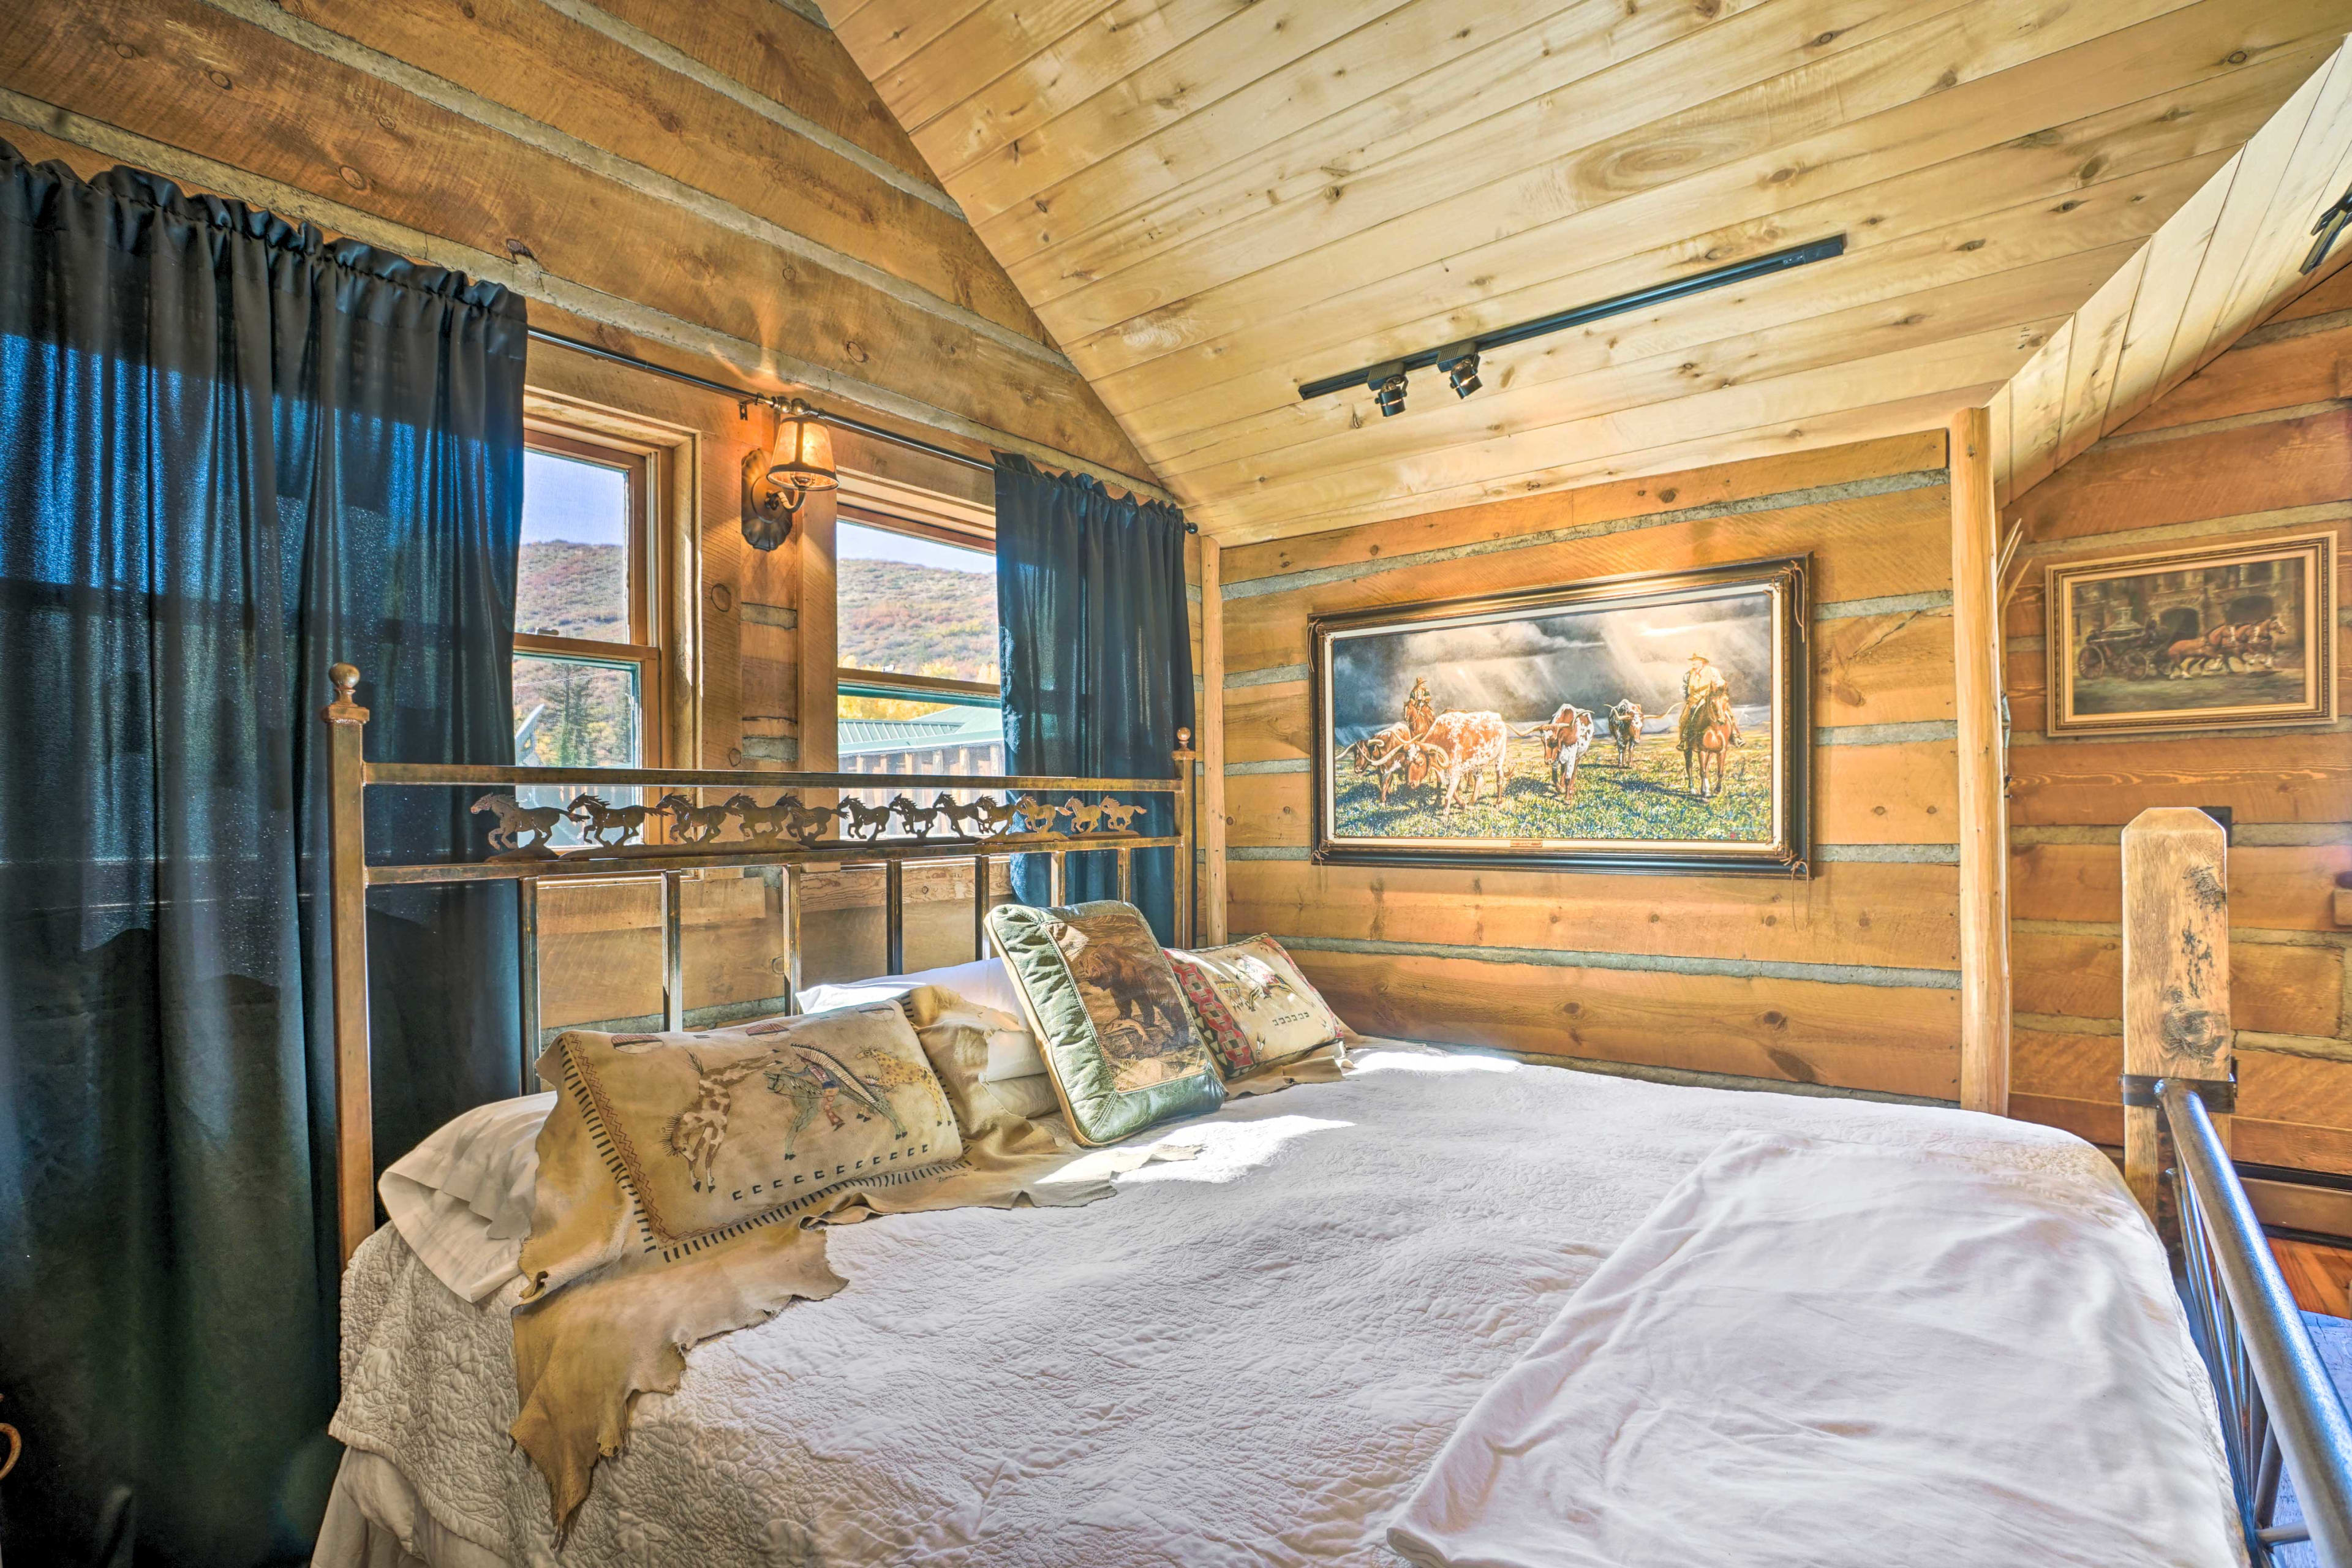 Two guests can share this luxury king bed.